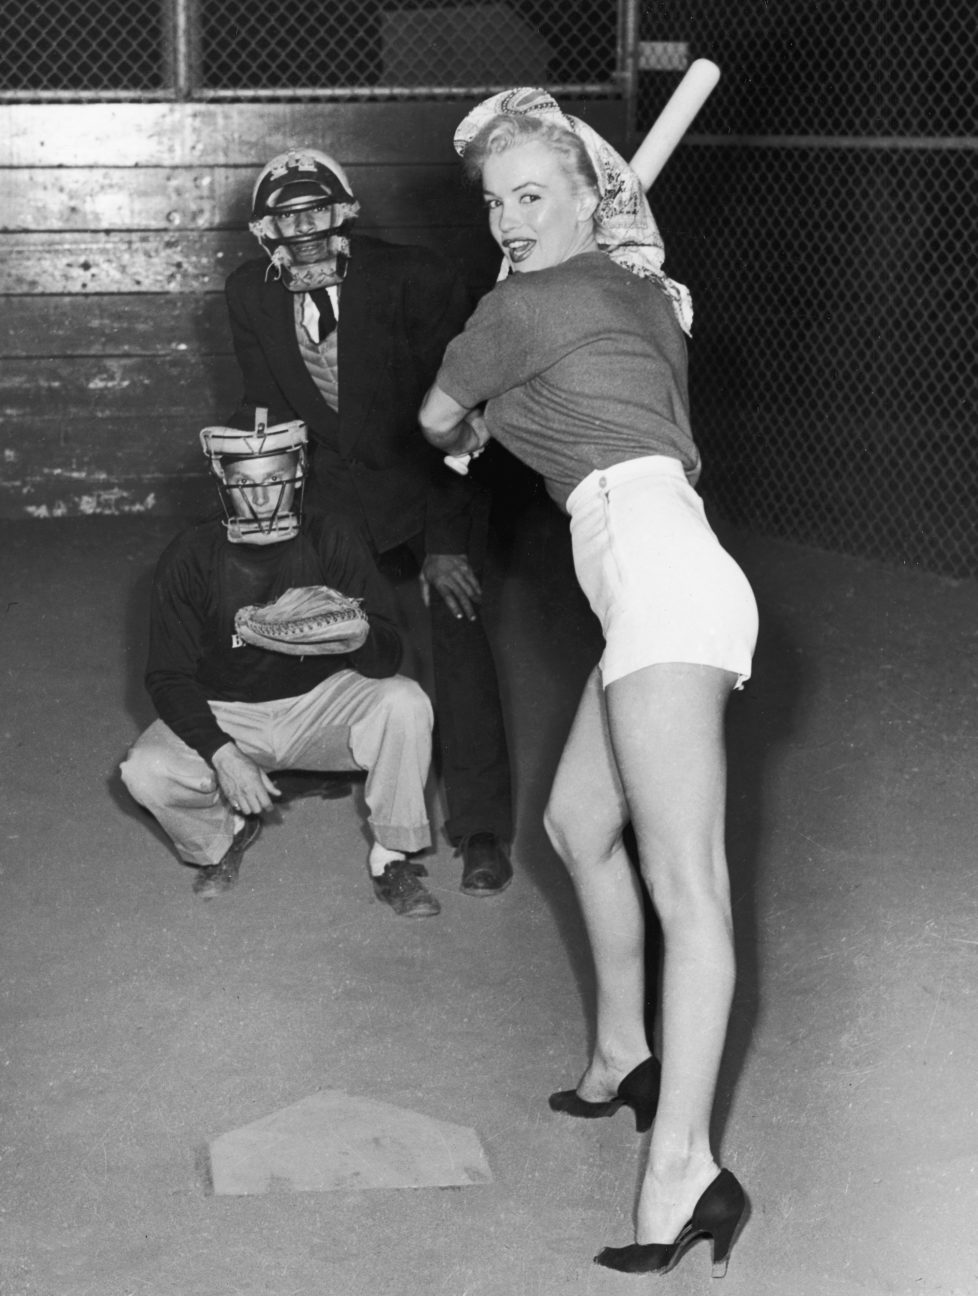 July 1952: American actor Marilyn Monroe (1926 - 1962), wearing shorts and high heels, prepares to swing a baseball bat during a 20th Century Fox Studio baseball league game. Studio employees play umpire and catcher. (Photo by Hulton Archive/Getty Images)